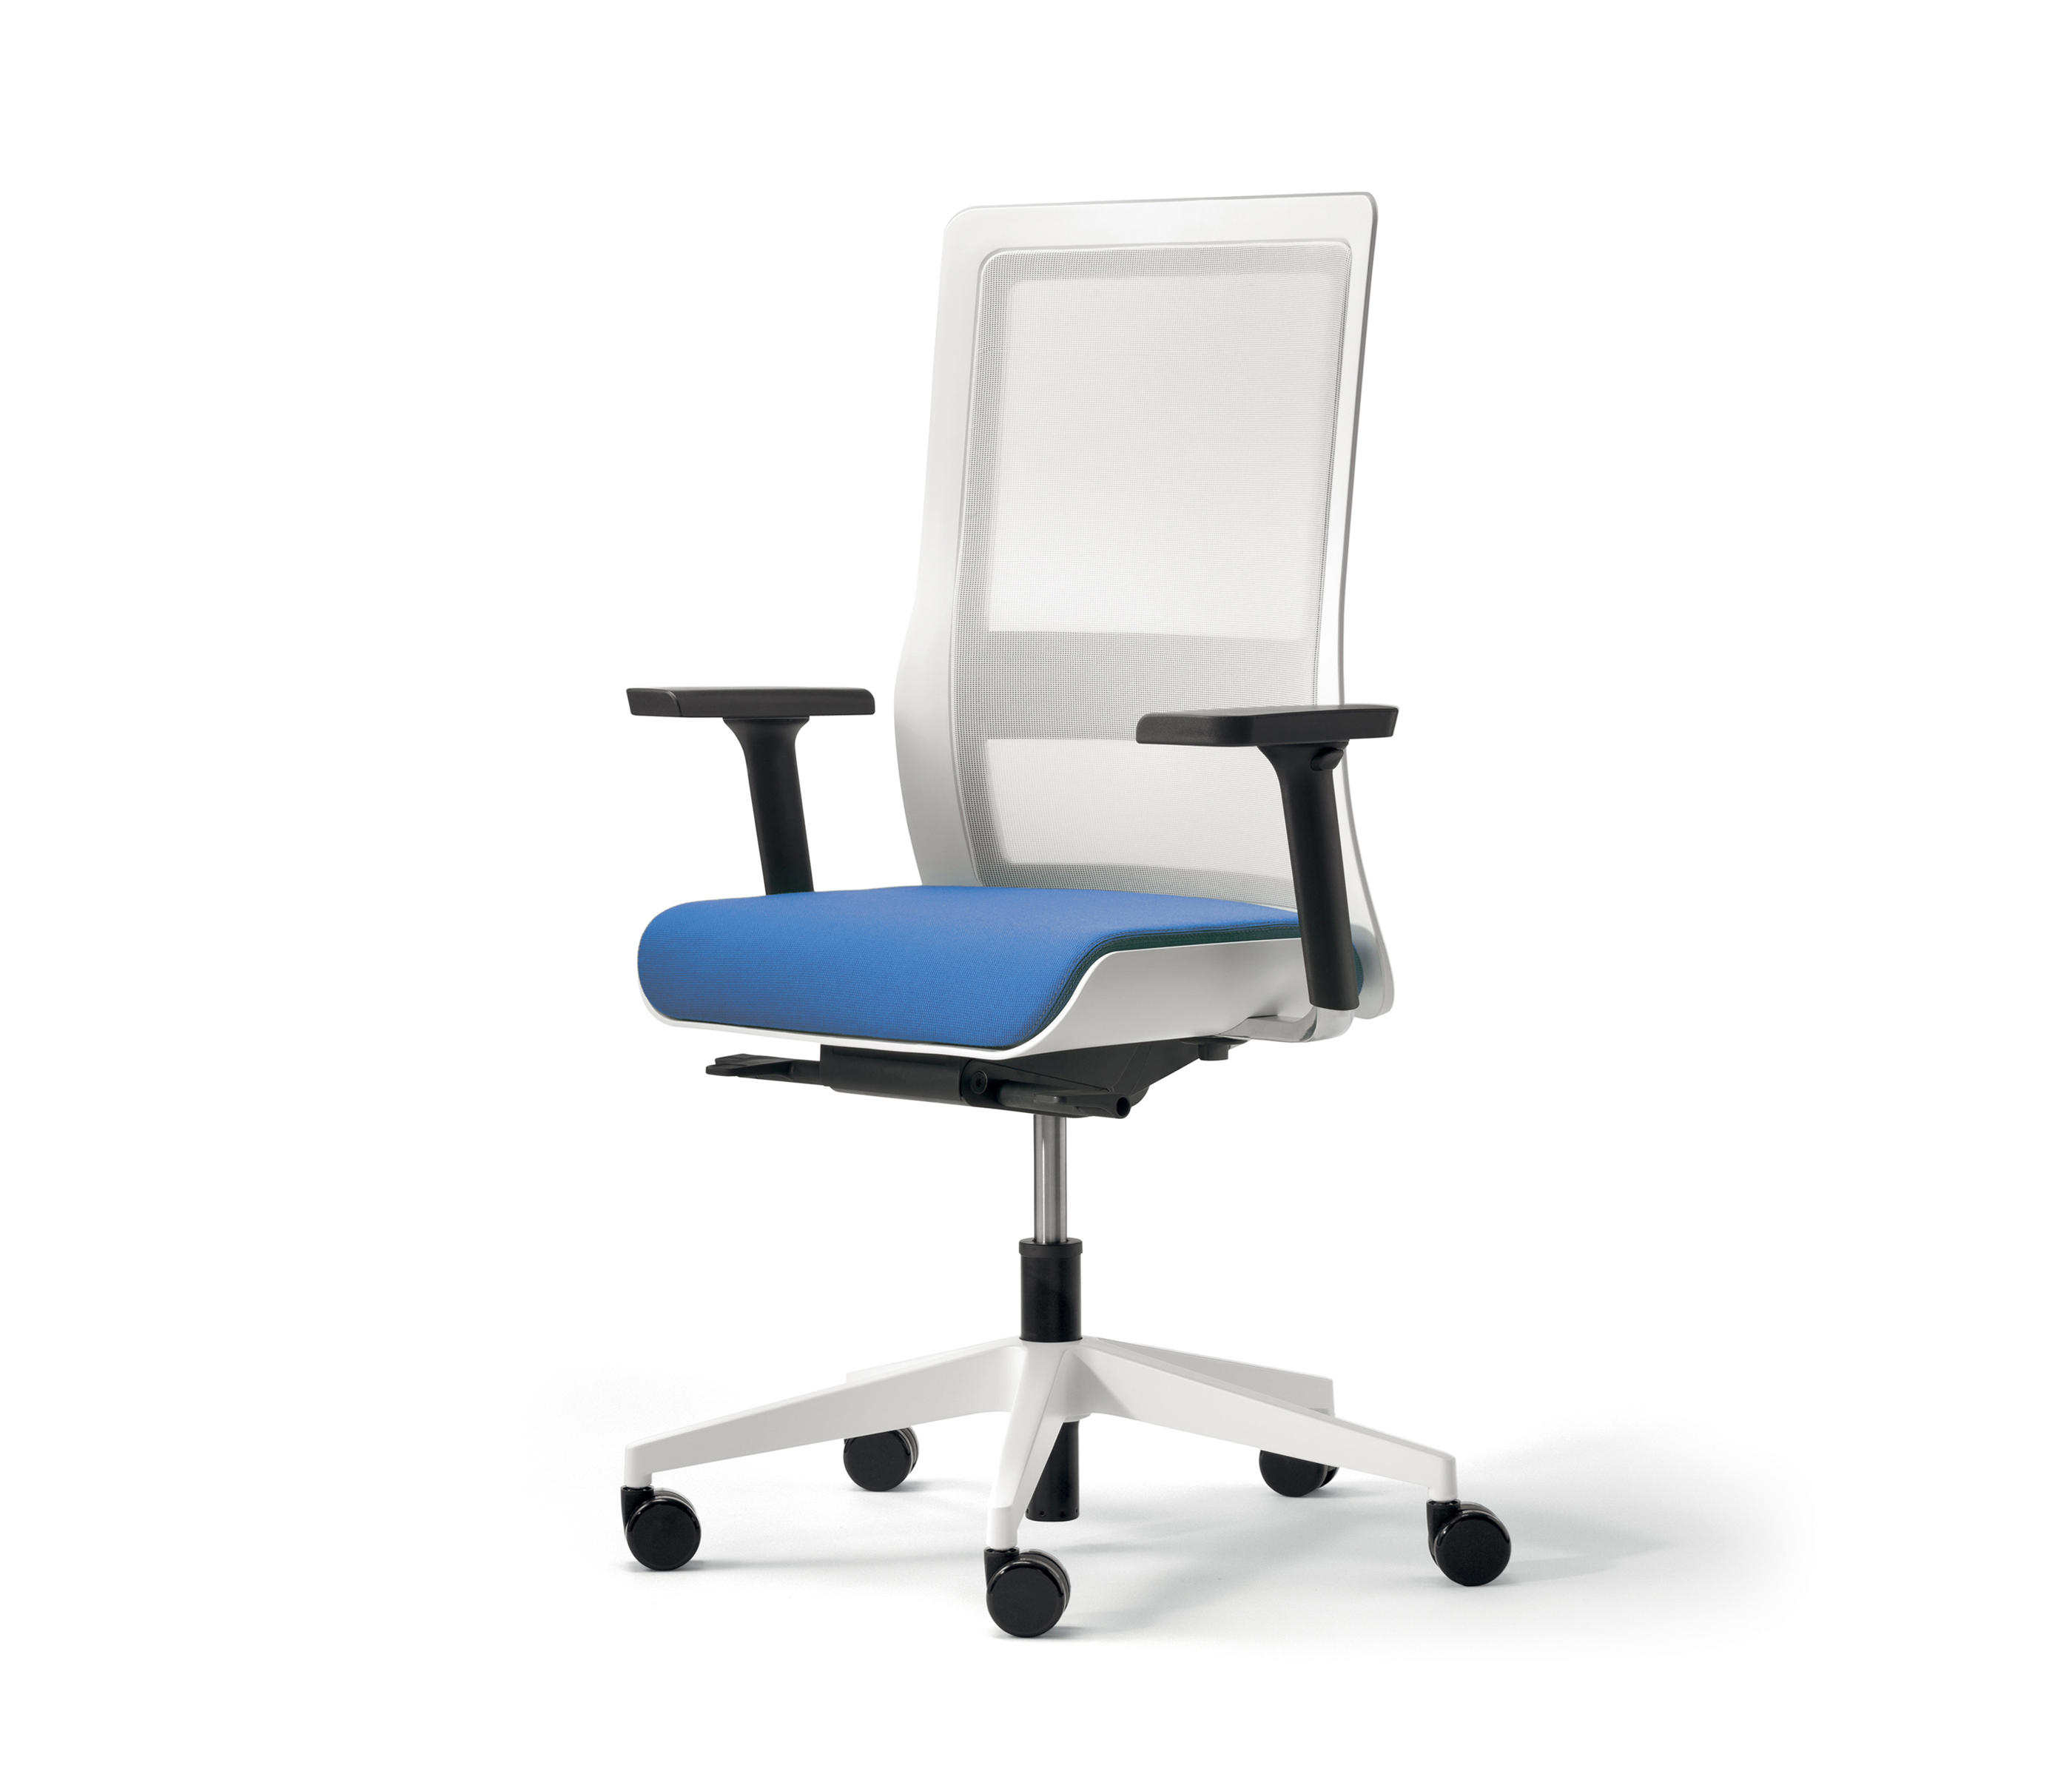 POI SWIVEL CHAIR Task chairs from Wiesner Hager